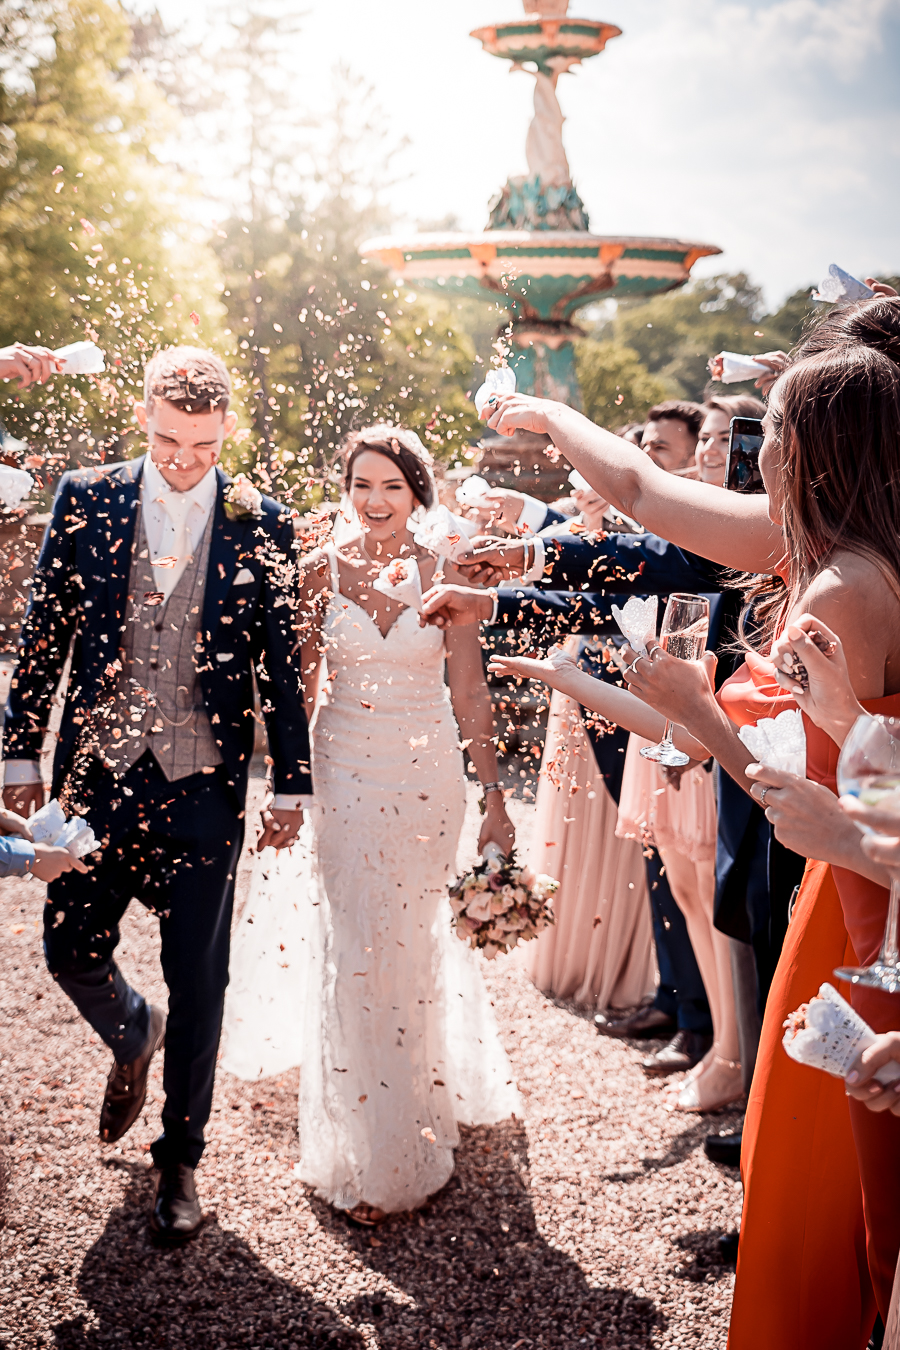 Real wedding at Chateau Impney classic glamorous style, Nicholas Rogers Photography (30)